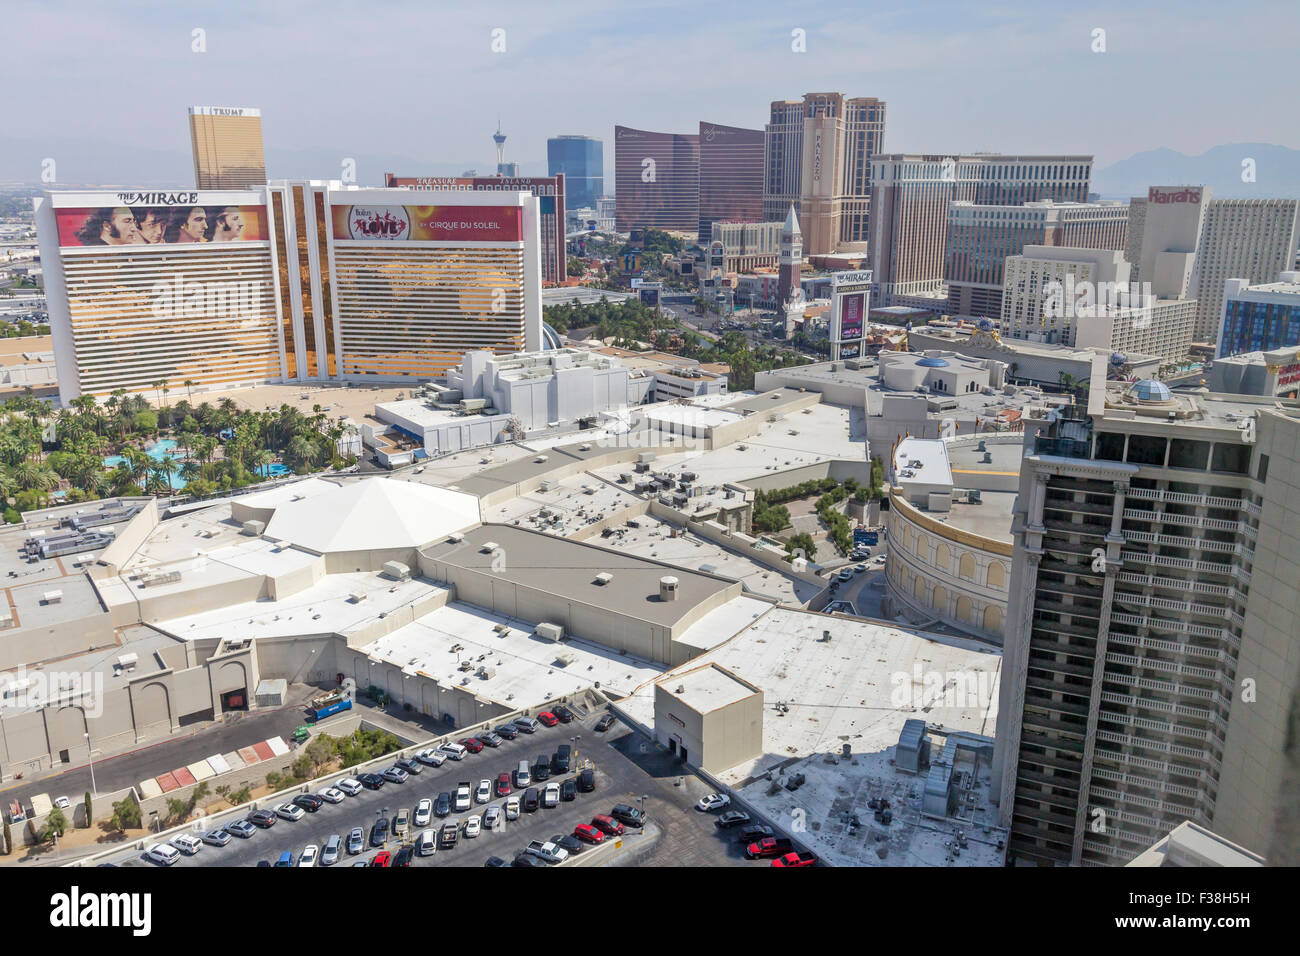 Daytime aerial view of Resorts, Hotels and Casinos in Las Vegas, Nevada. - Stock Image